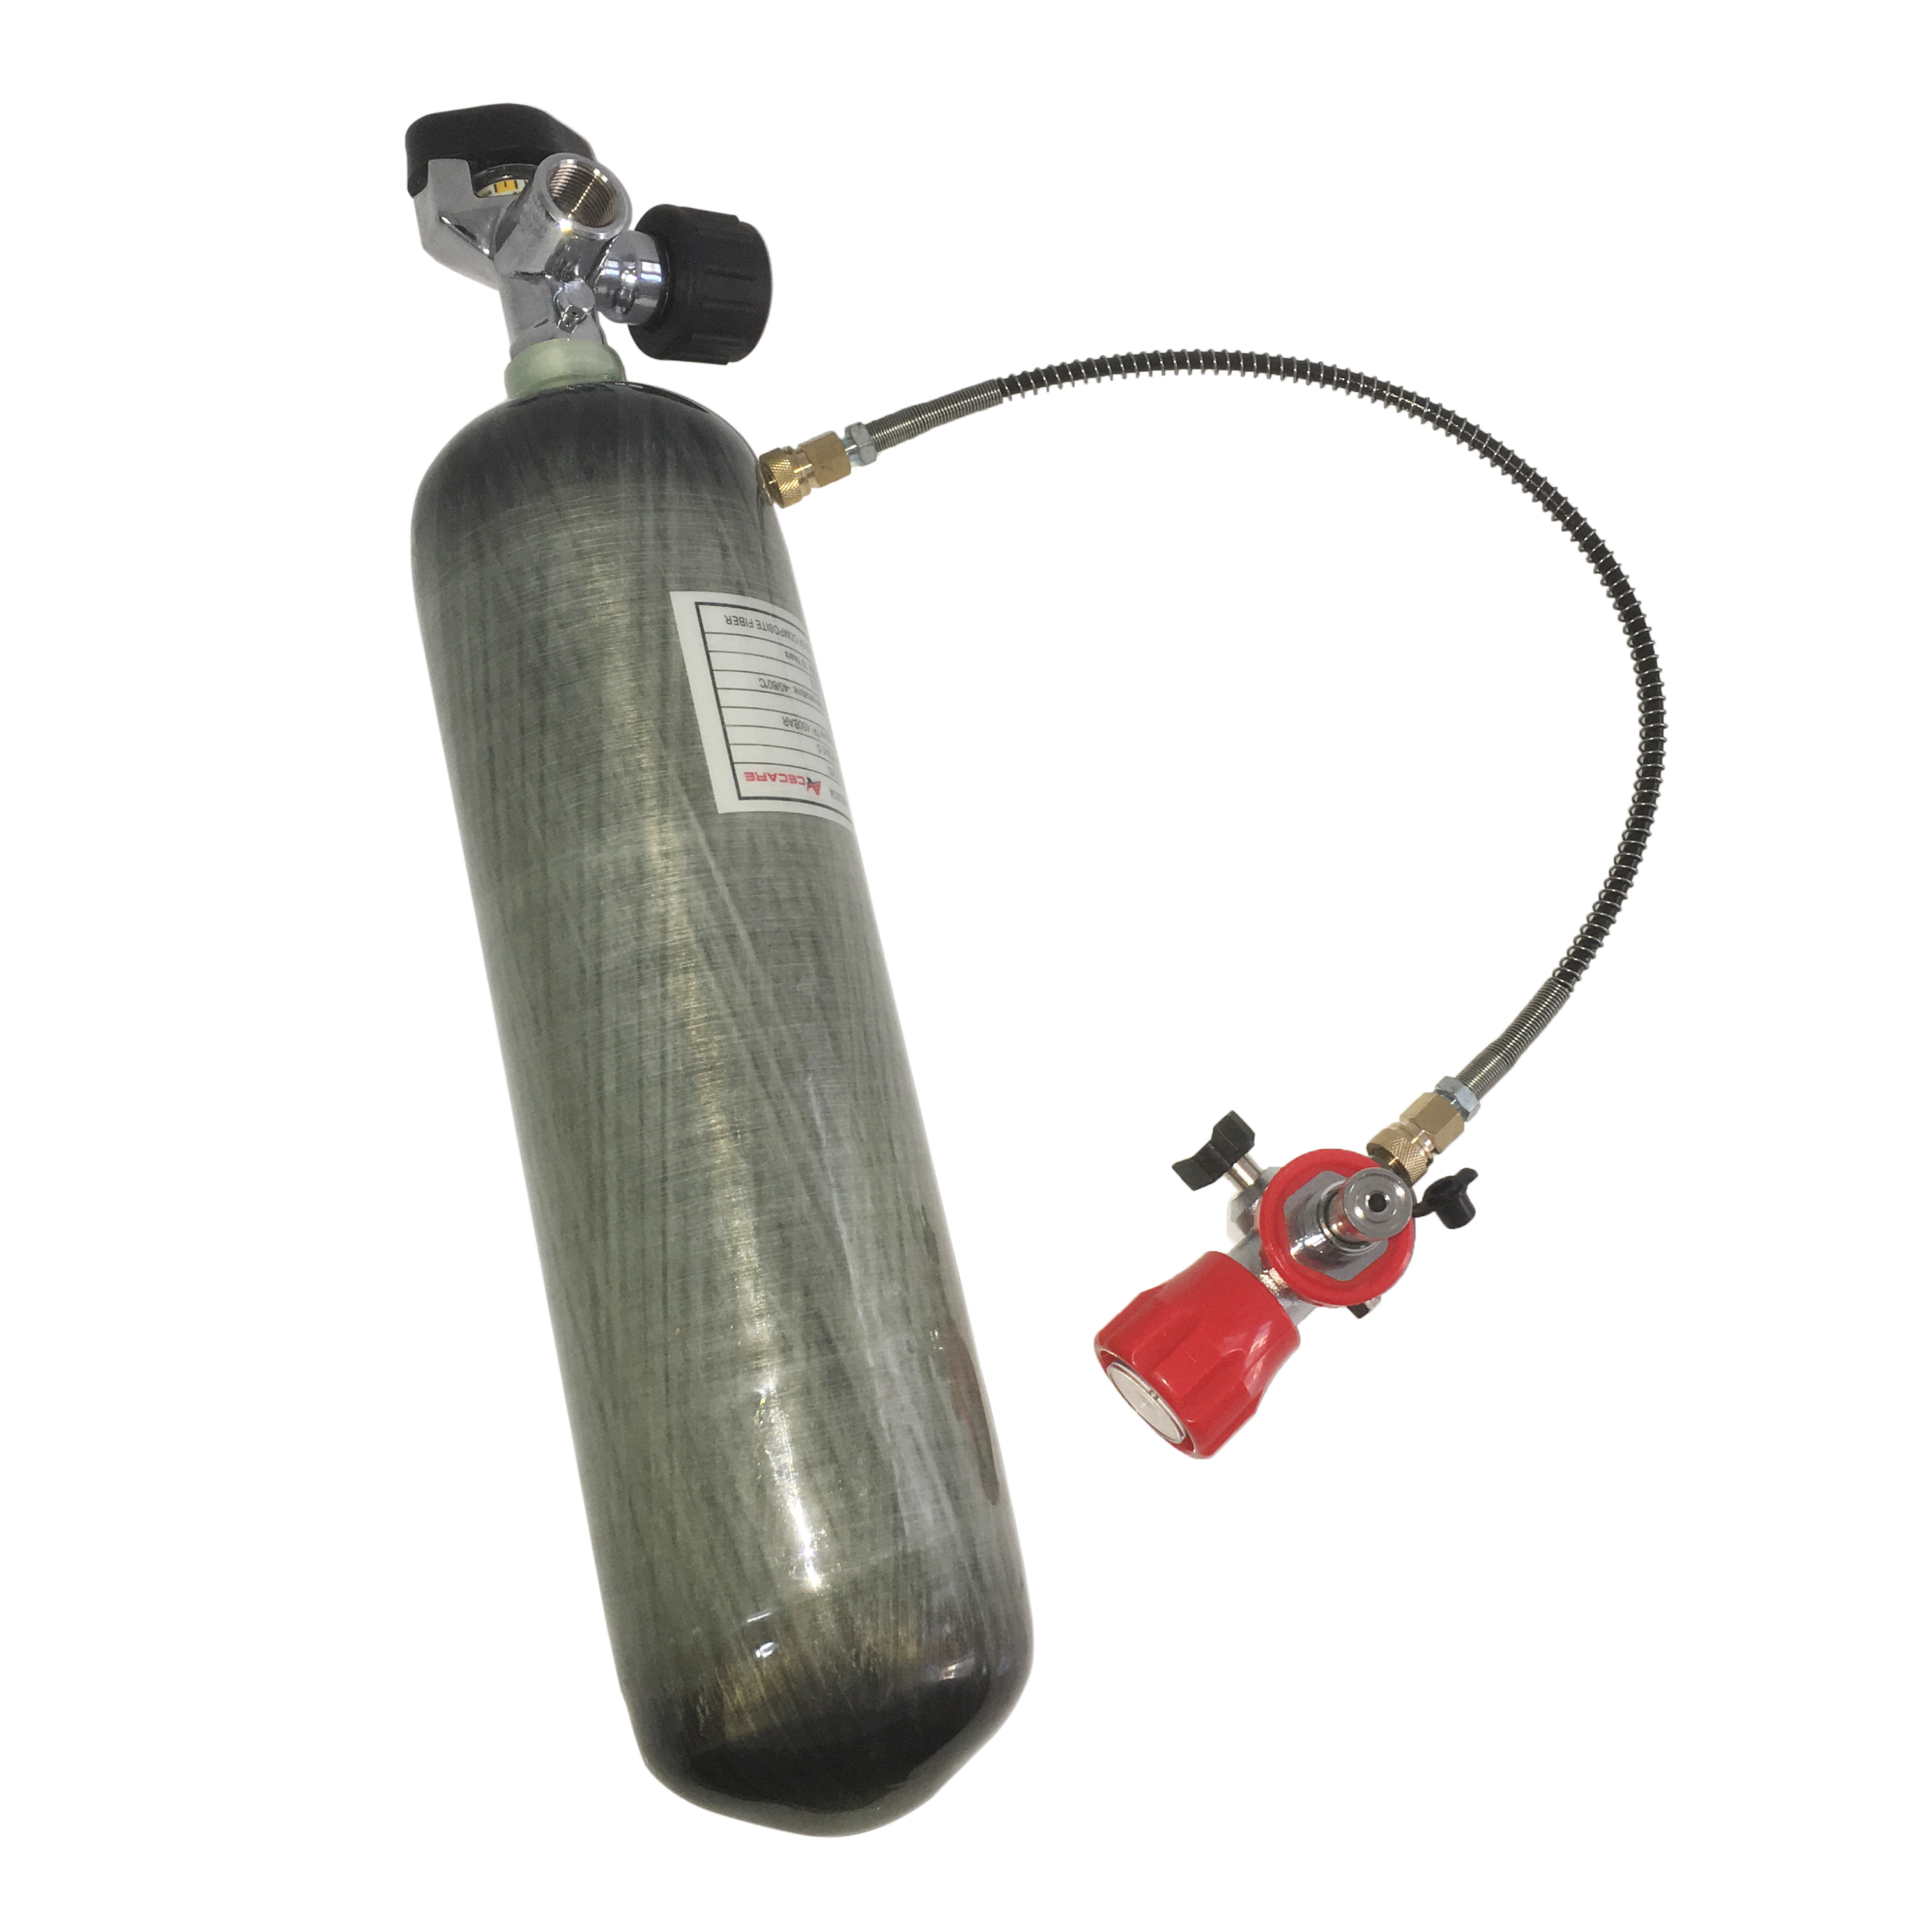 AC103201 3LCE 4500Psi Carbon Fiber Cylinder Air Softgun Paintball PCP Air Rifle Mini Tank With Valve And Fill Station Acecare